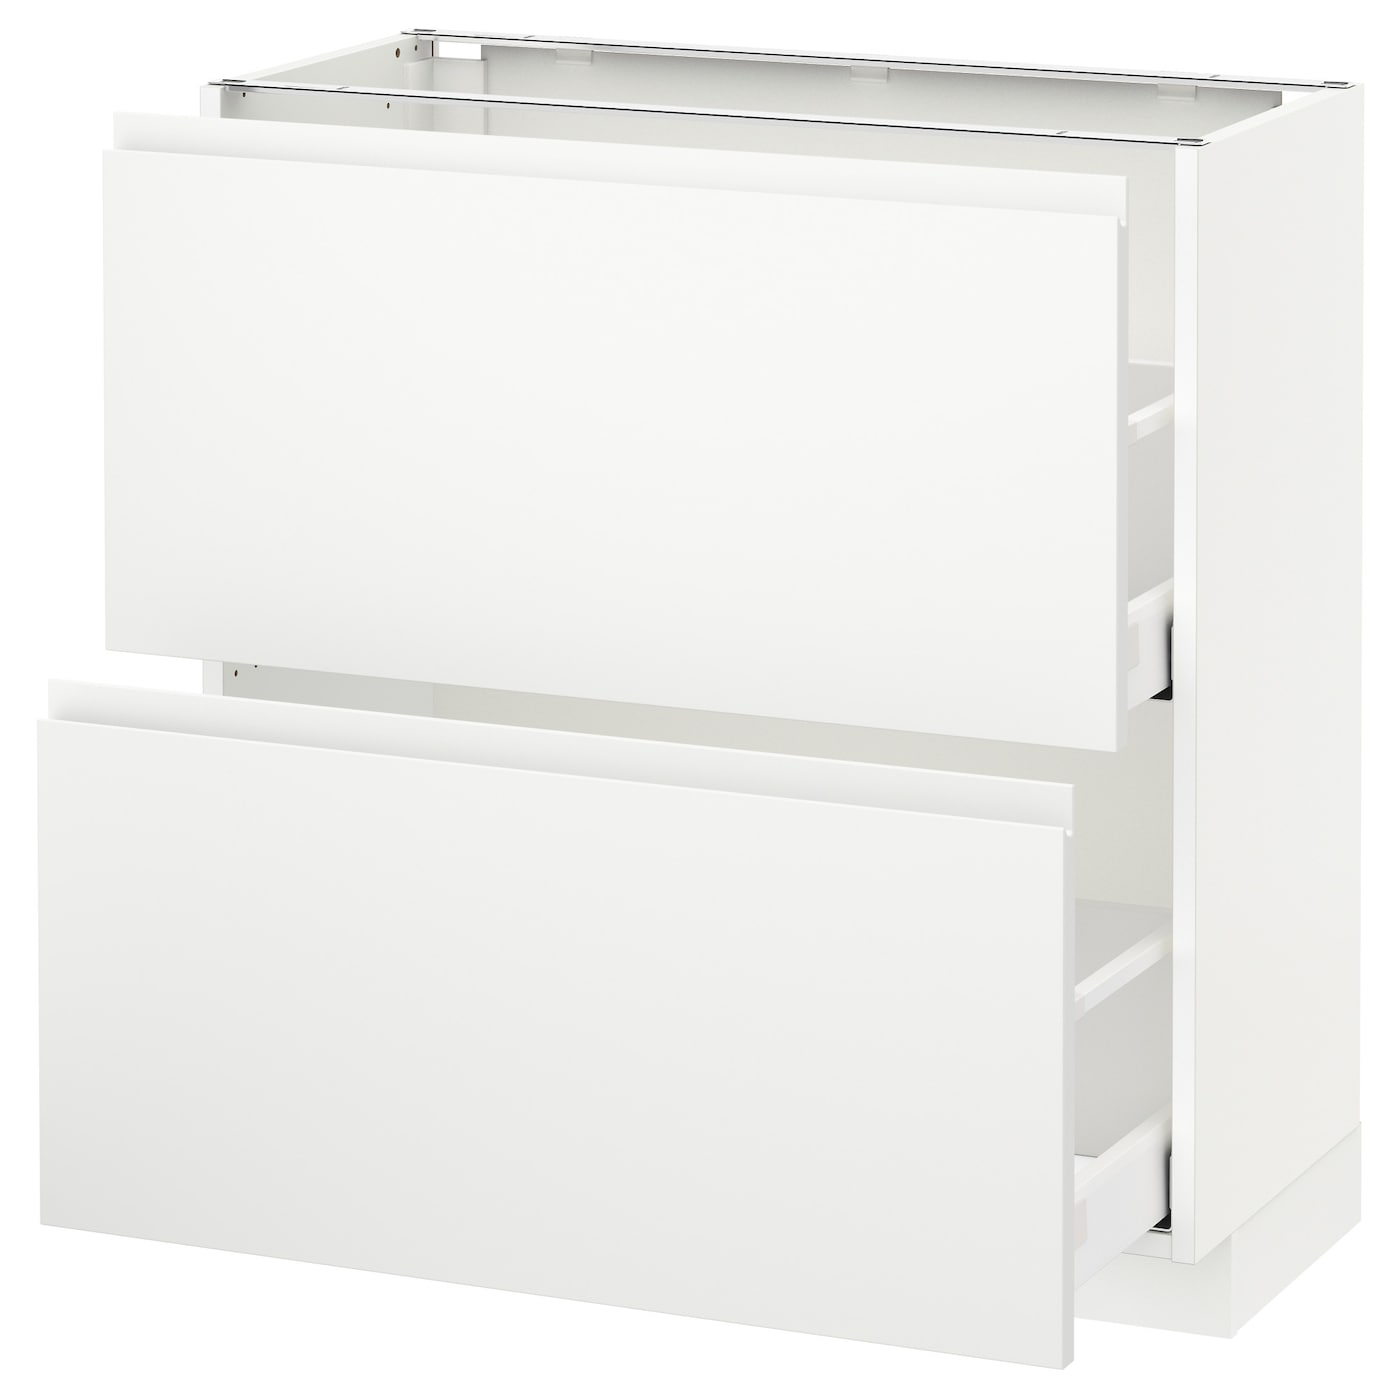 metod maximera base cabinet with 2 drawers white voxtorp white 80x37 cm ikea. Black Bedroom Furniture Sets. Home Design Ideas